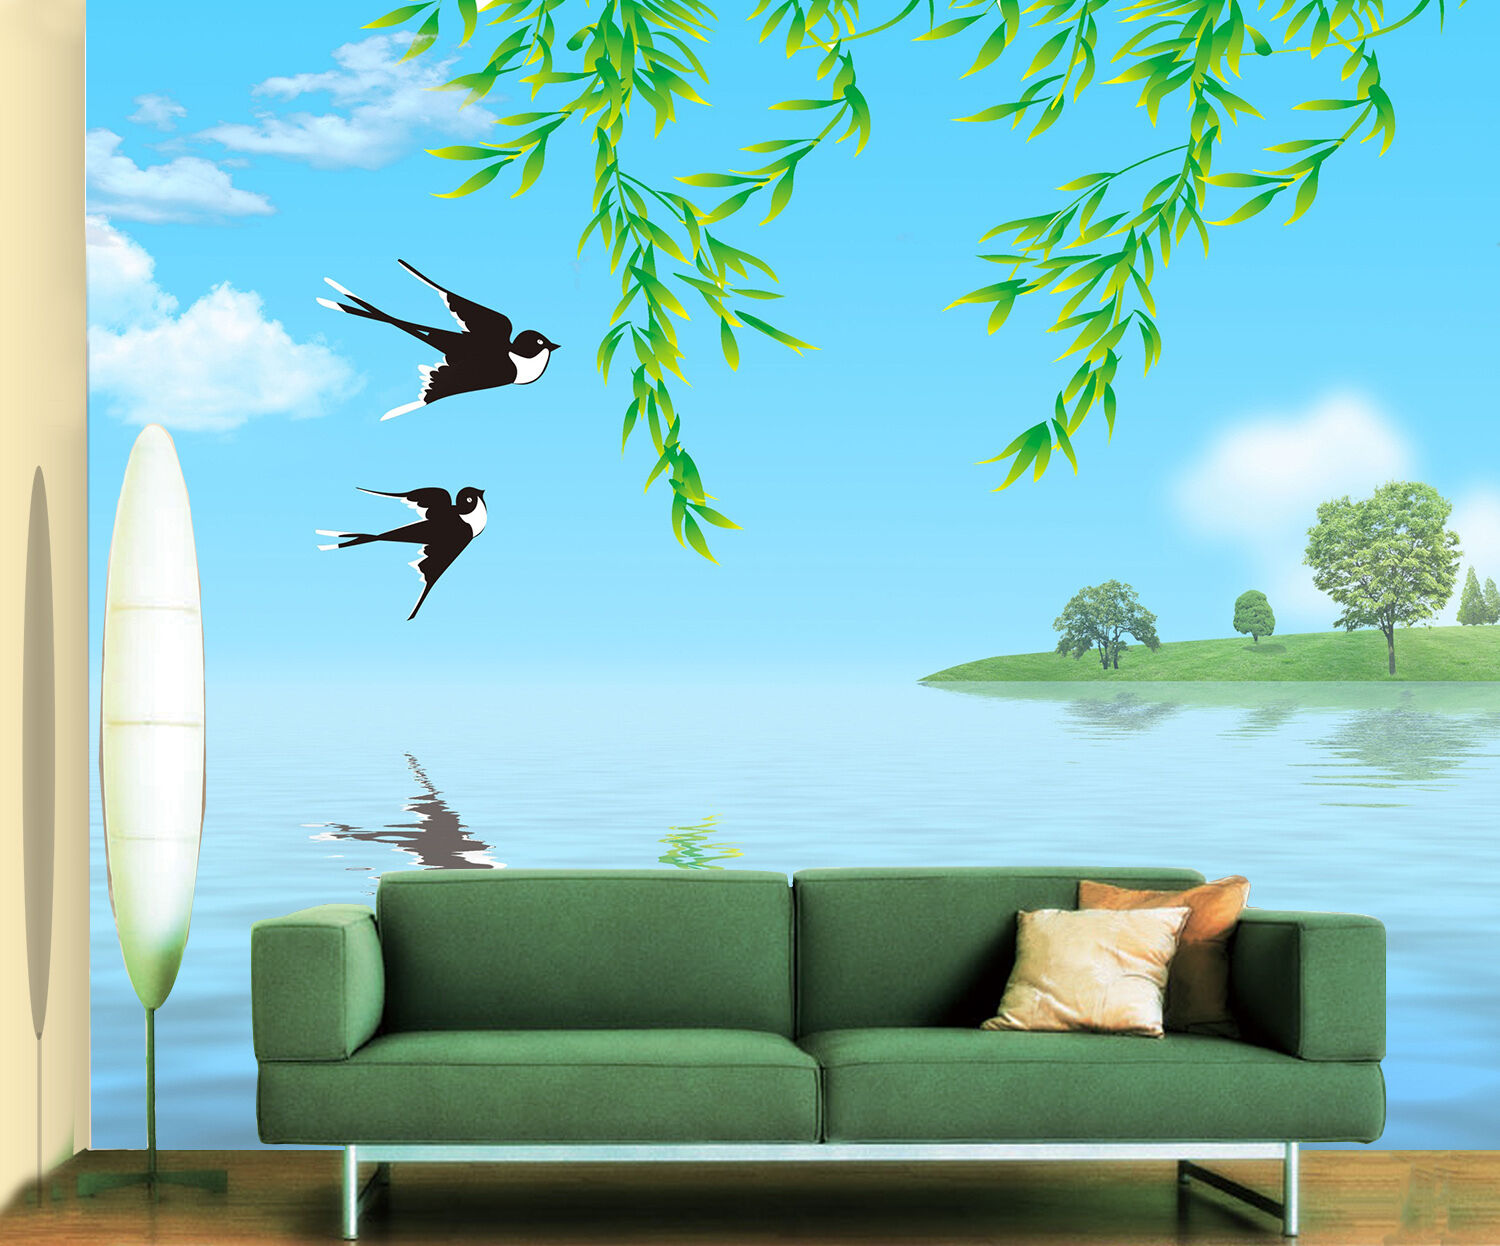 3D Lake, swallows, leaves 65 Wall Paper Print Wall Decal Deco Indoor Wall Murals